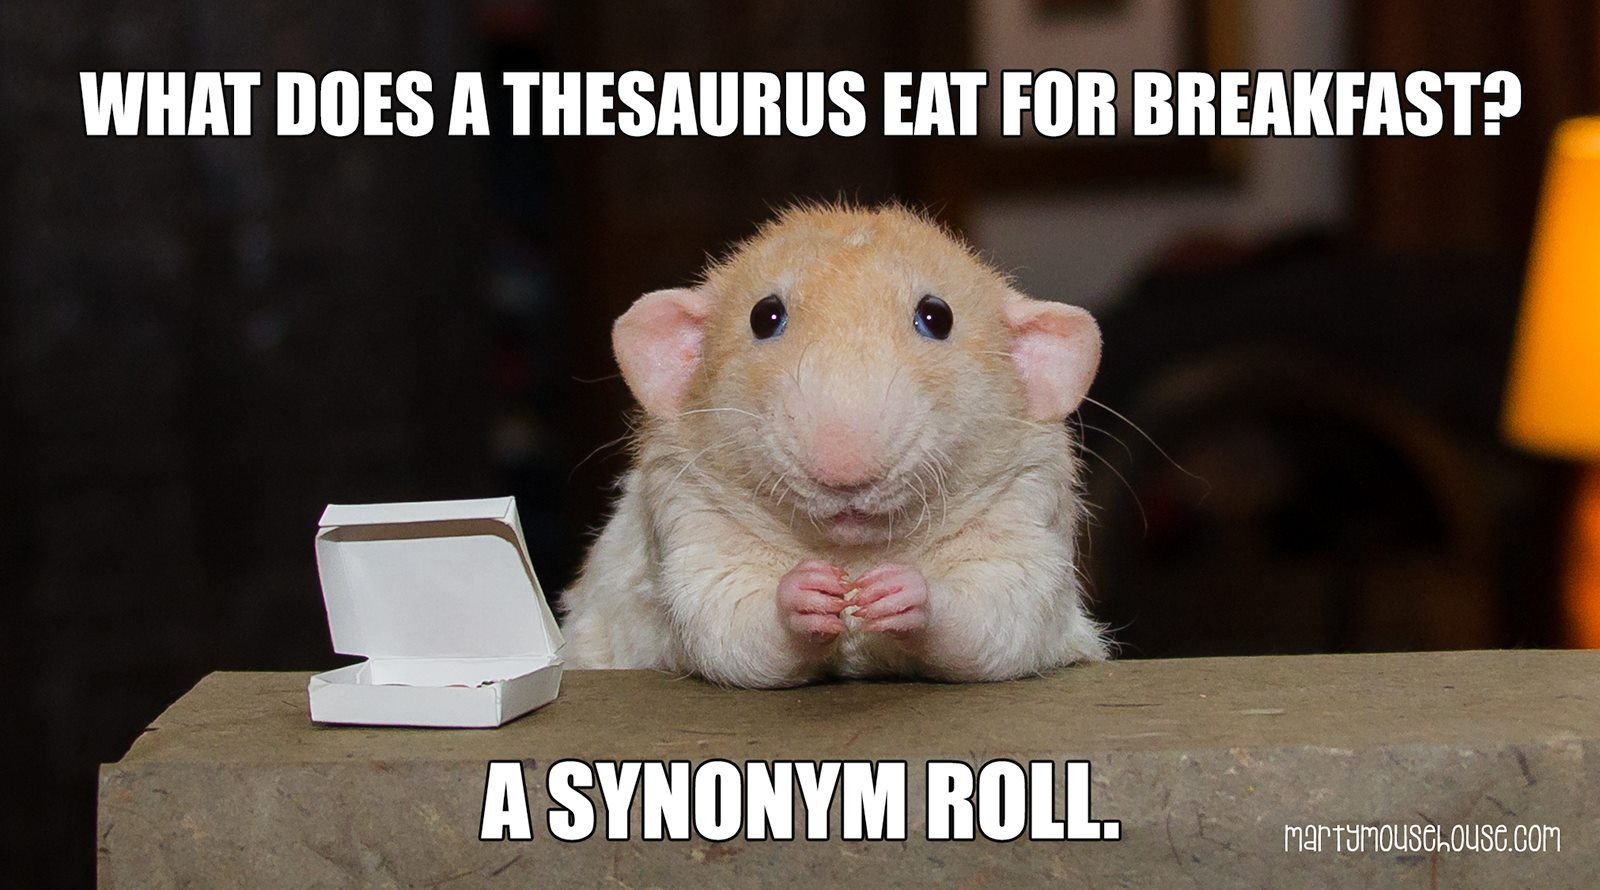 What Does A Thesaurus Eat For Breakfast?